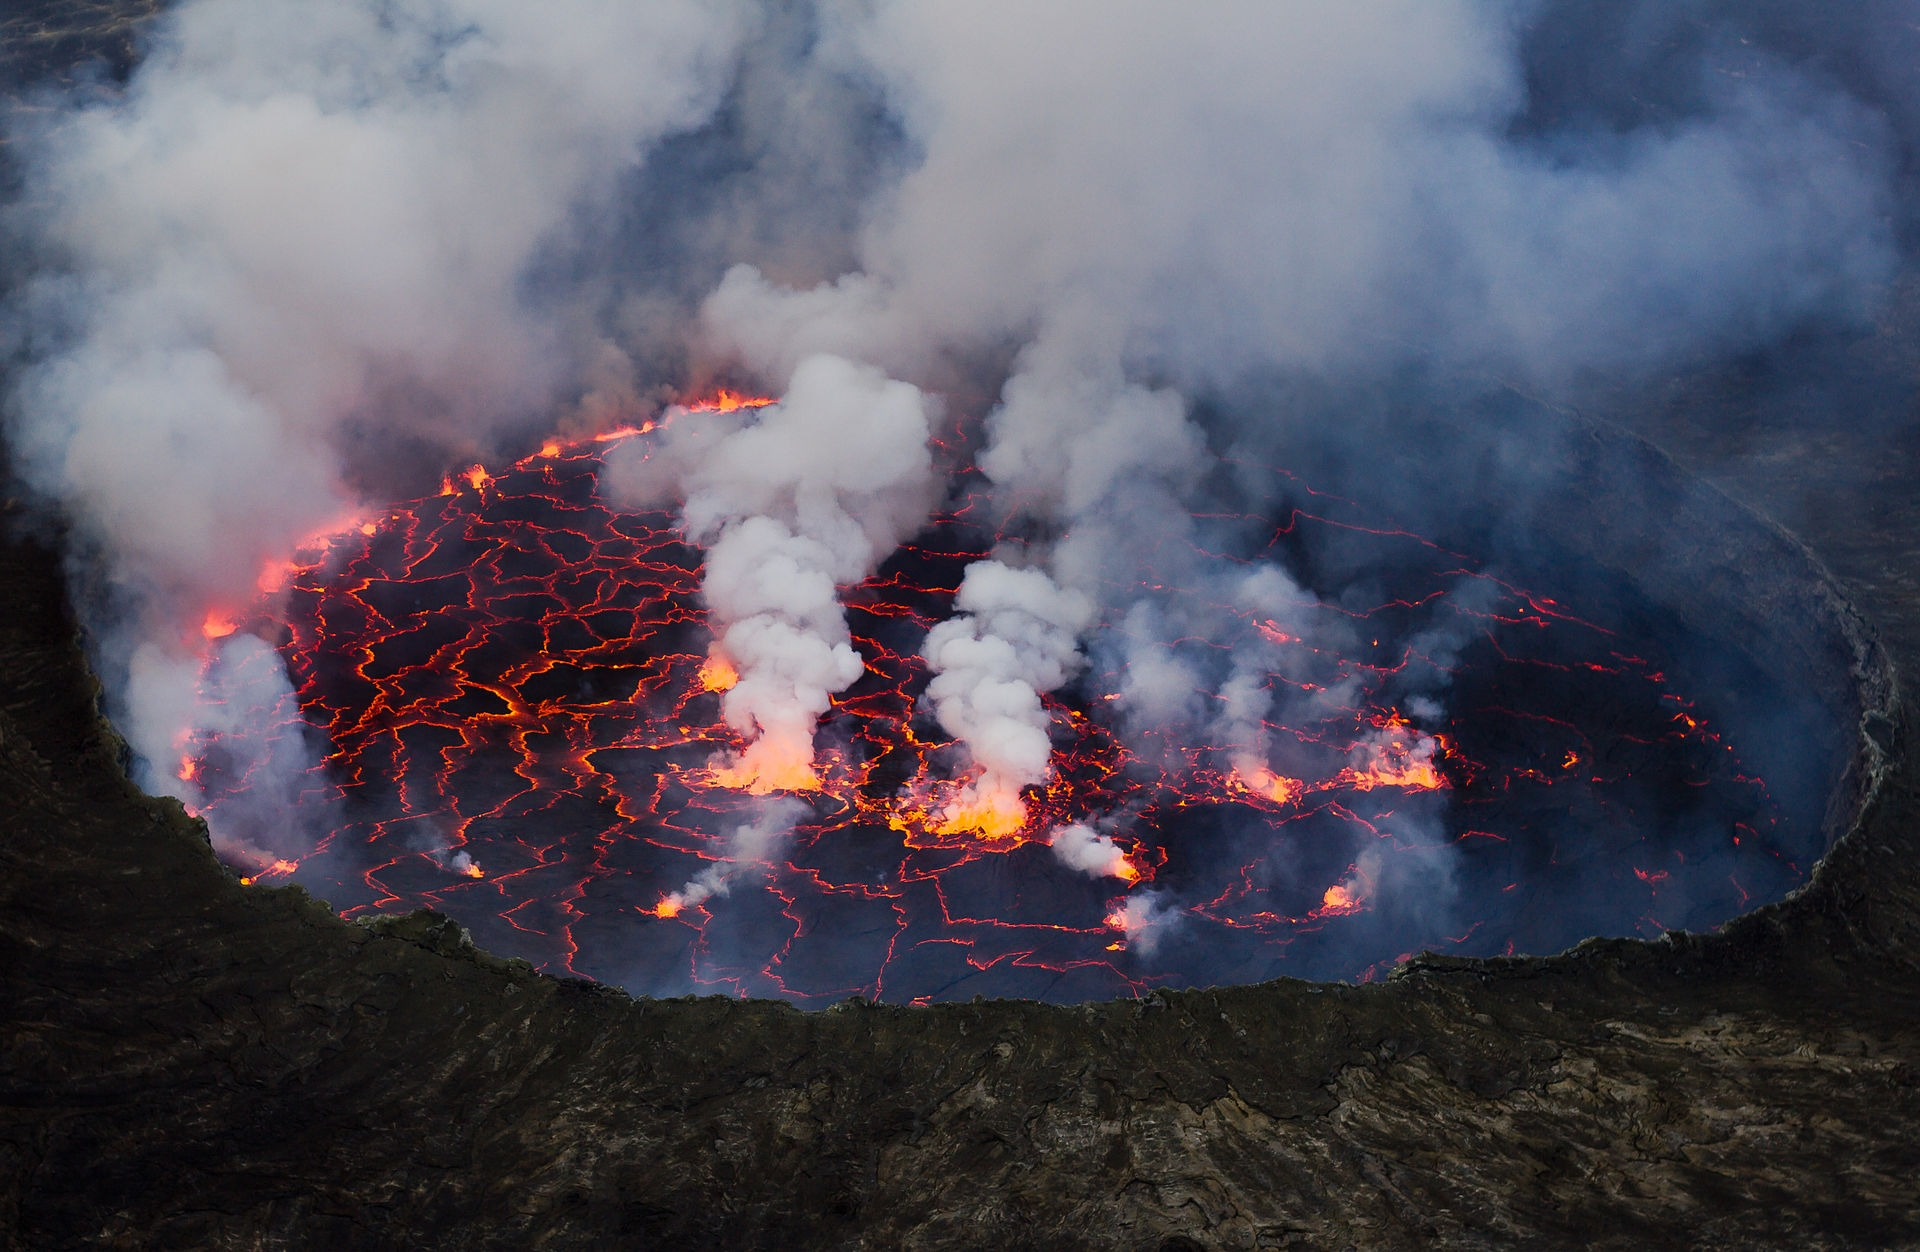 Photo of the Virunga National Park World Heritage site. Virunga national park in the Democratic Republic of the Congo has no less than seven volcanoes, two of which are the most active in Africa. The Nyiragongo volcano features a liquid, alkaline lava lake that fills its entire crater. The volcano's periodic eruptions have catastrophic consequences for the surrounding areas. Photo: Cai Tjeenk Willink (CC BY-SA.3.0) via Wikimedia Commons